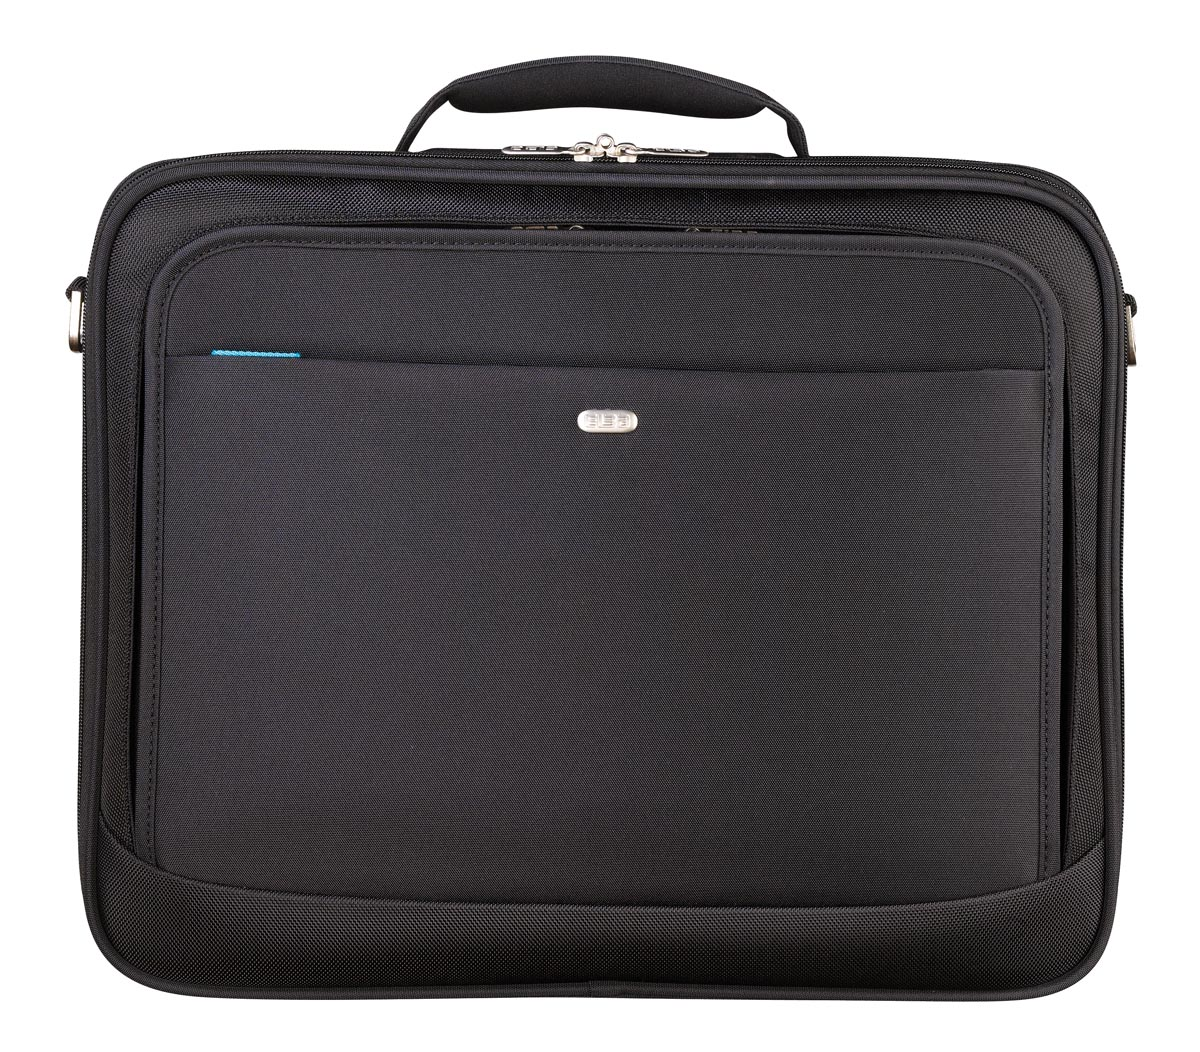 Pierre by Elba Laptoptas Original 18 inch